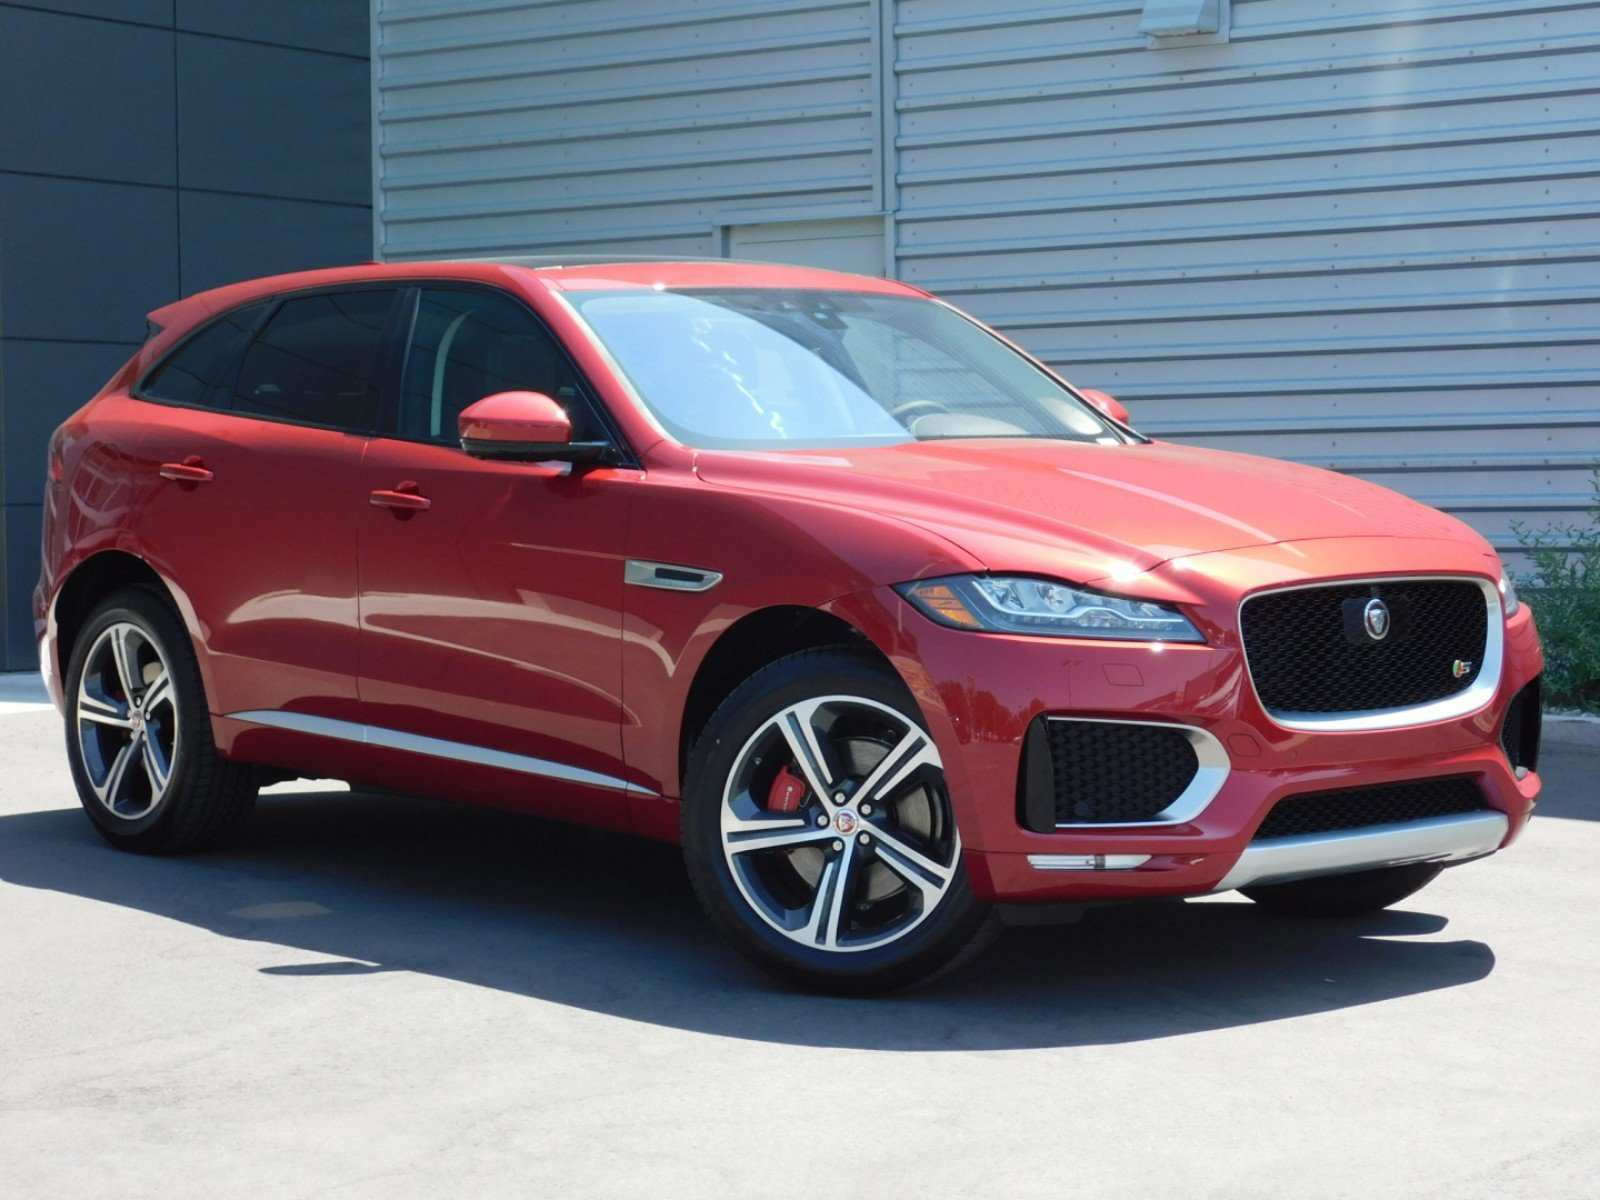 12 Gallery of Jaguar Suv 2019 Concept with Jaguar Suv 2019